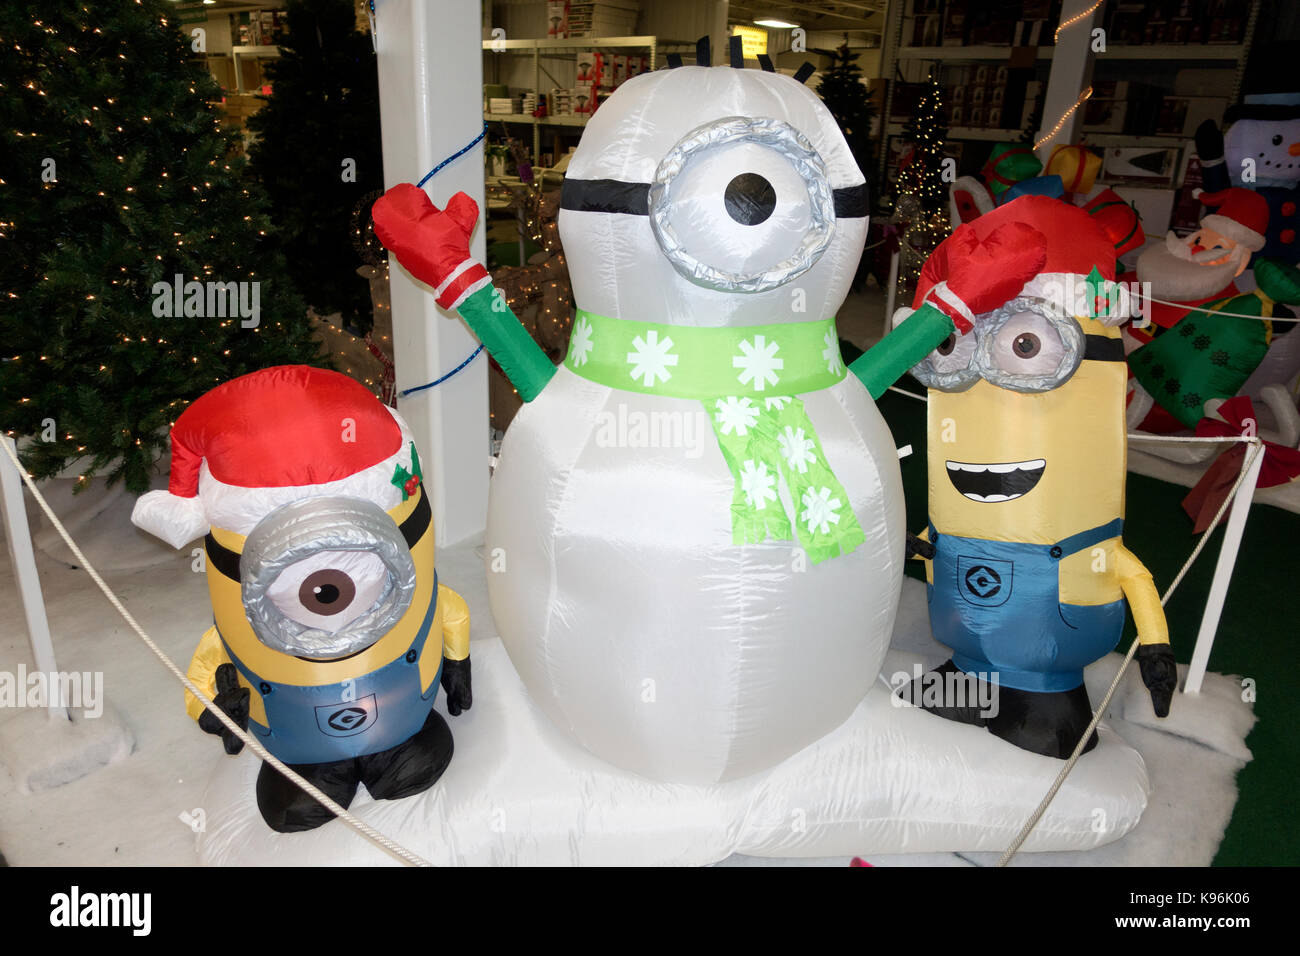 the minions celebrating christmas as a snowman and the elves inflatable yard decorations st paul minnesota mn usa